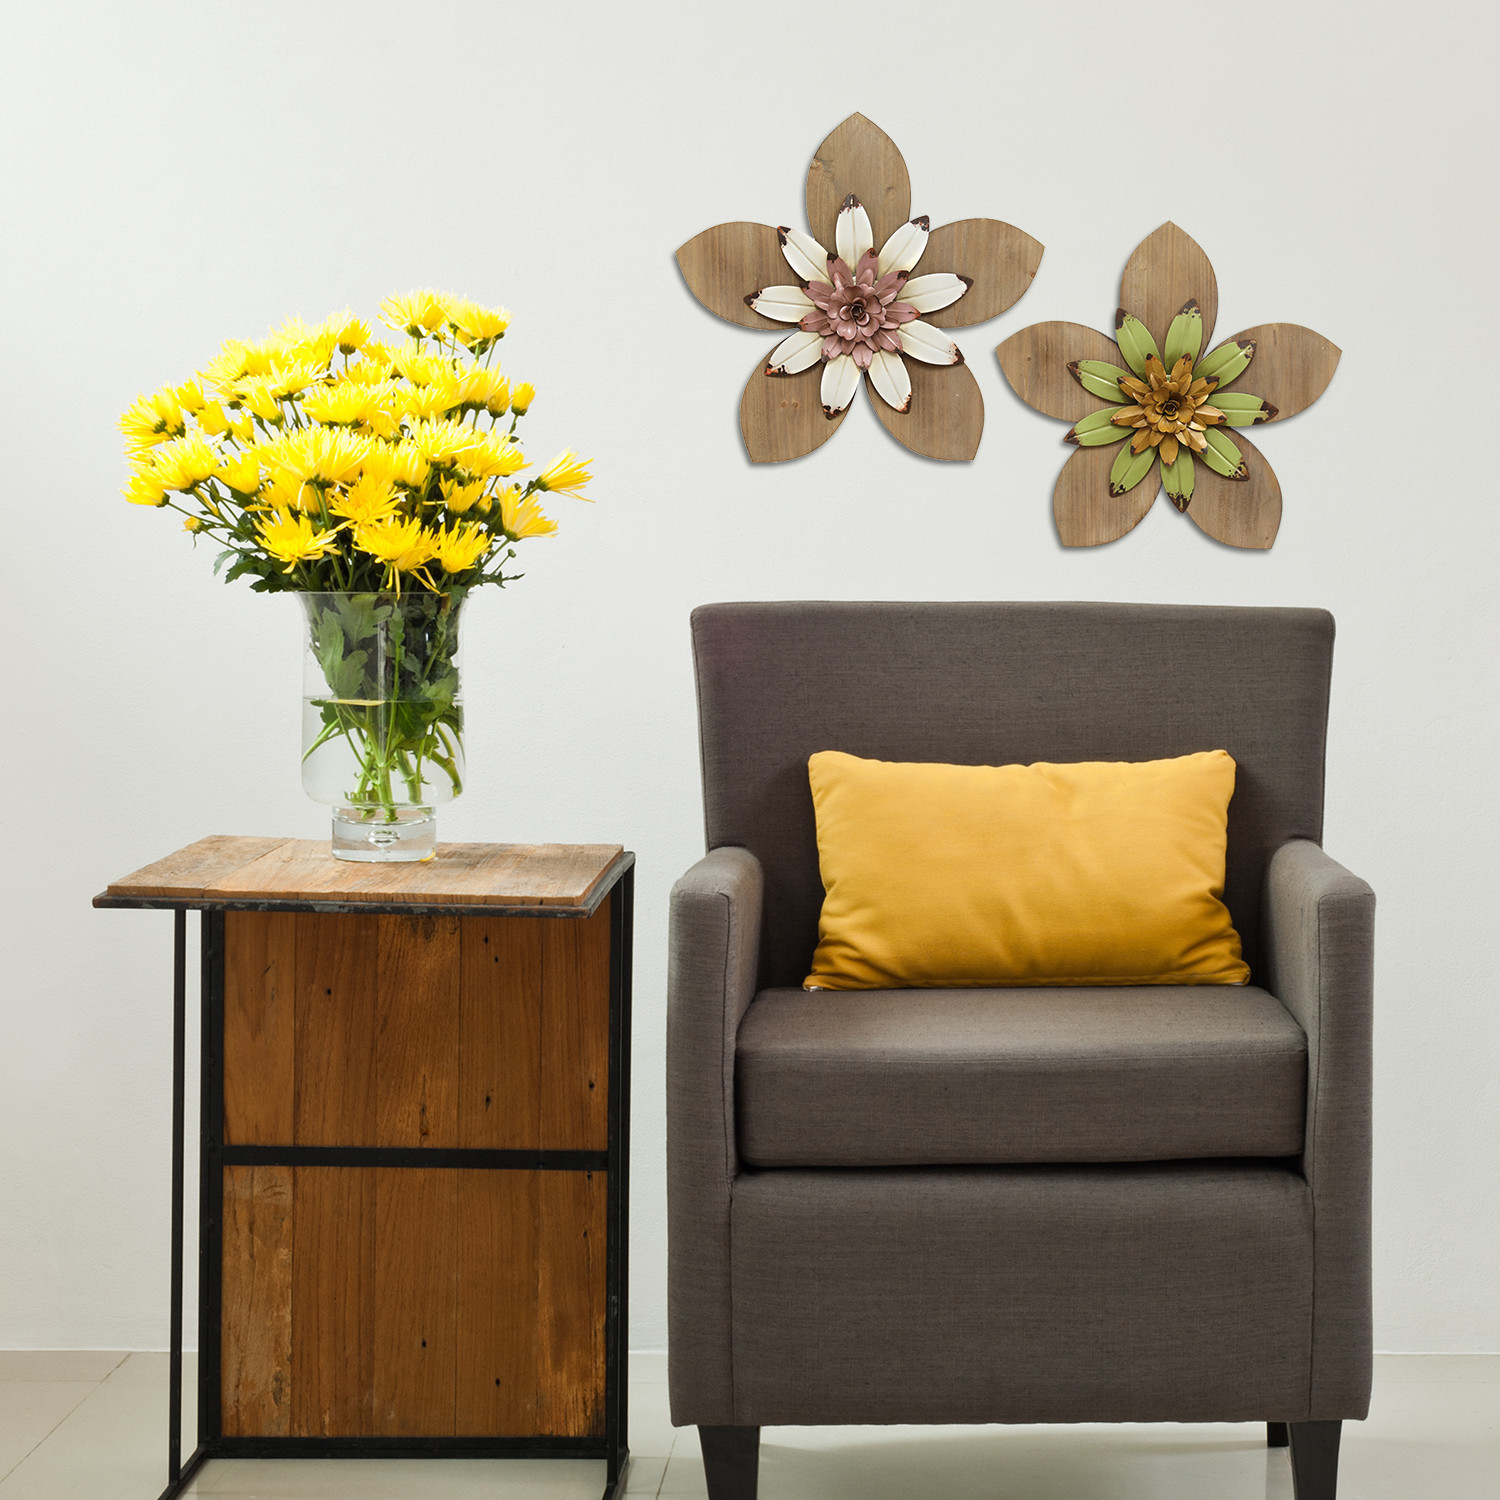 Best ideas about Wayfair Wall Art . Save or Pin Stratton Home Decor Rustic Flower Wall Décor Now.